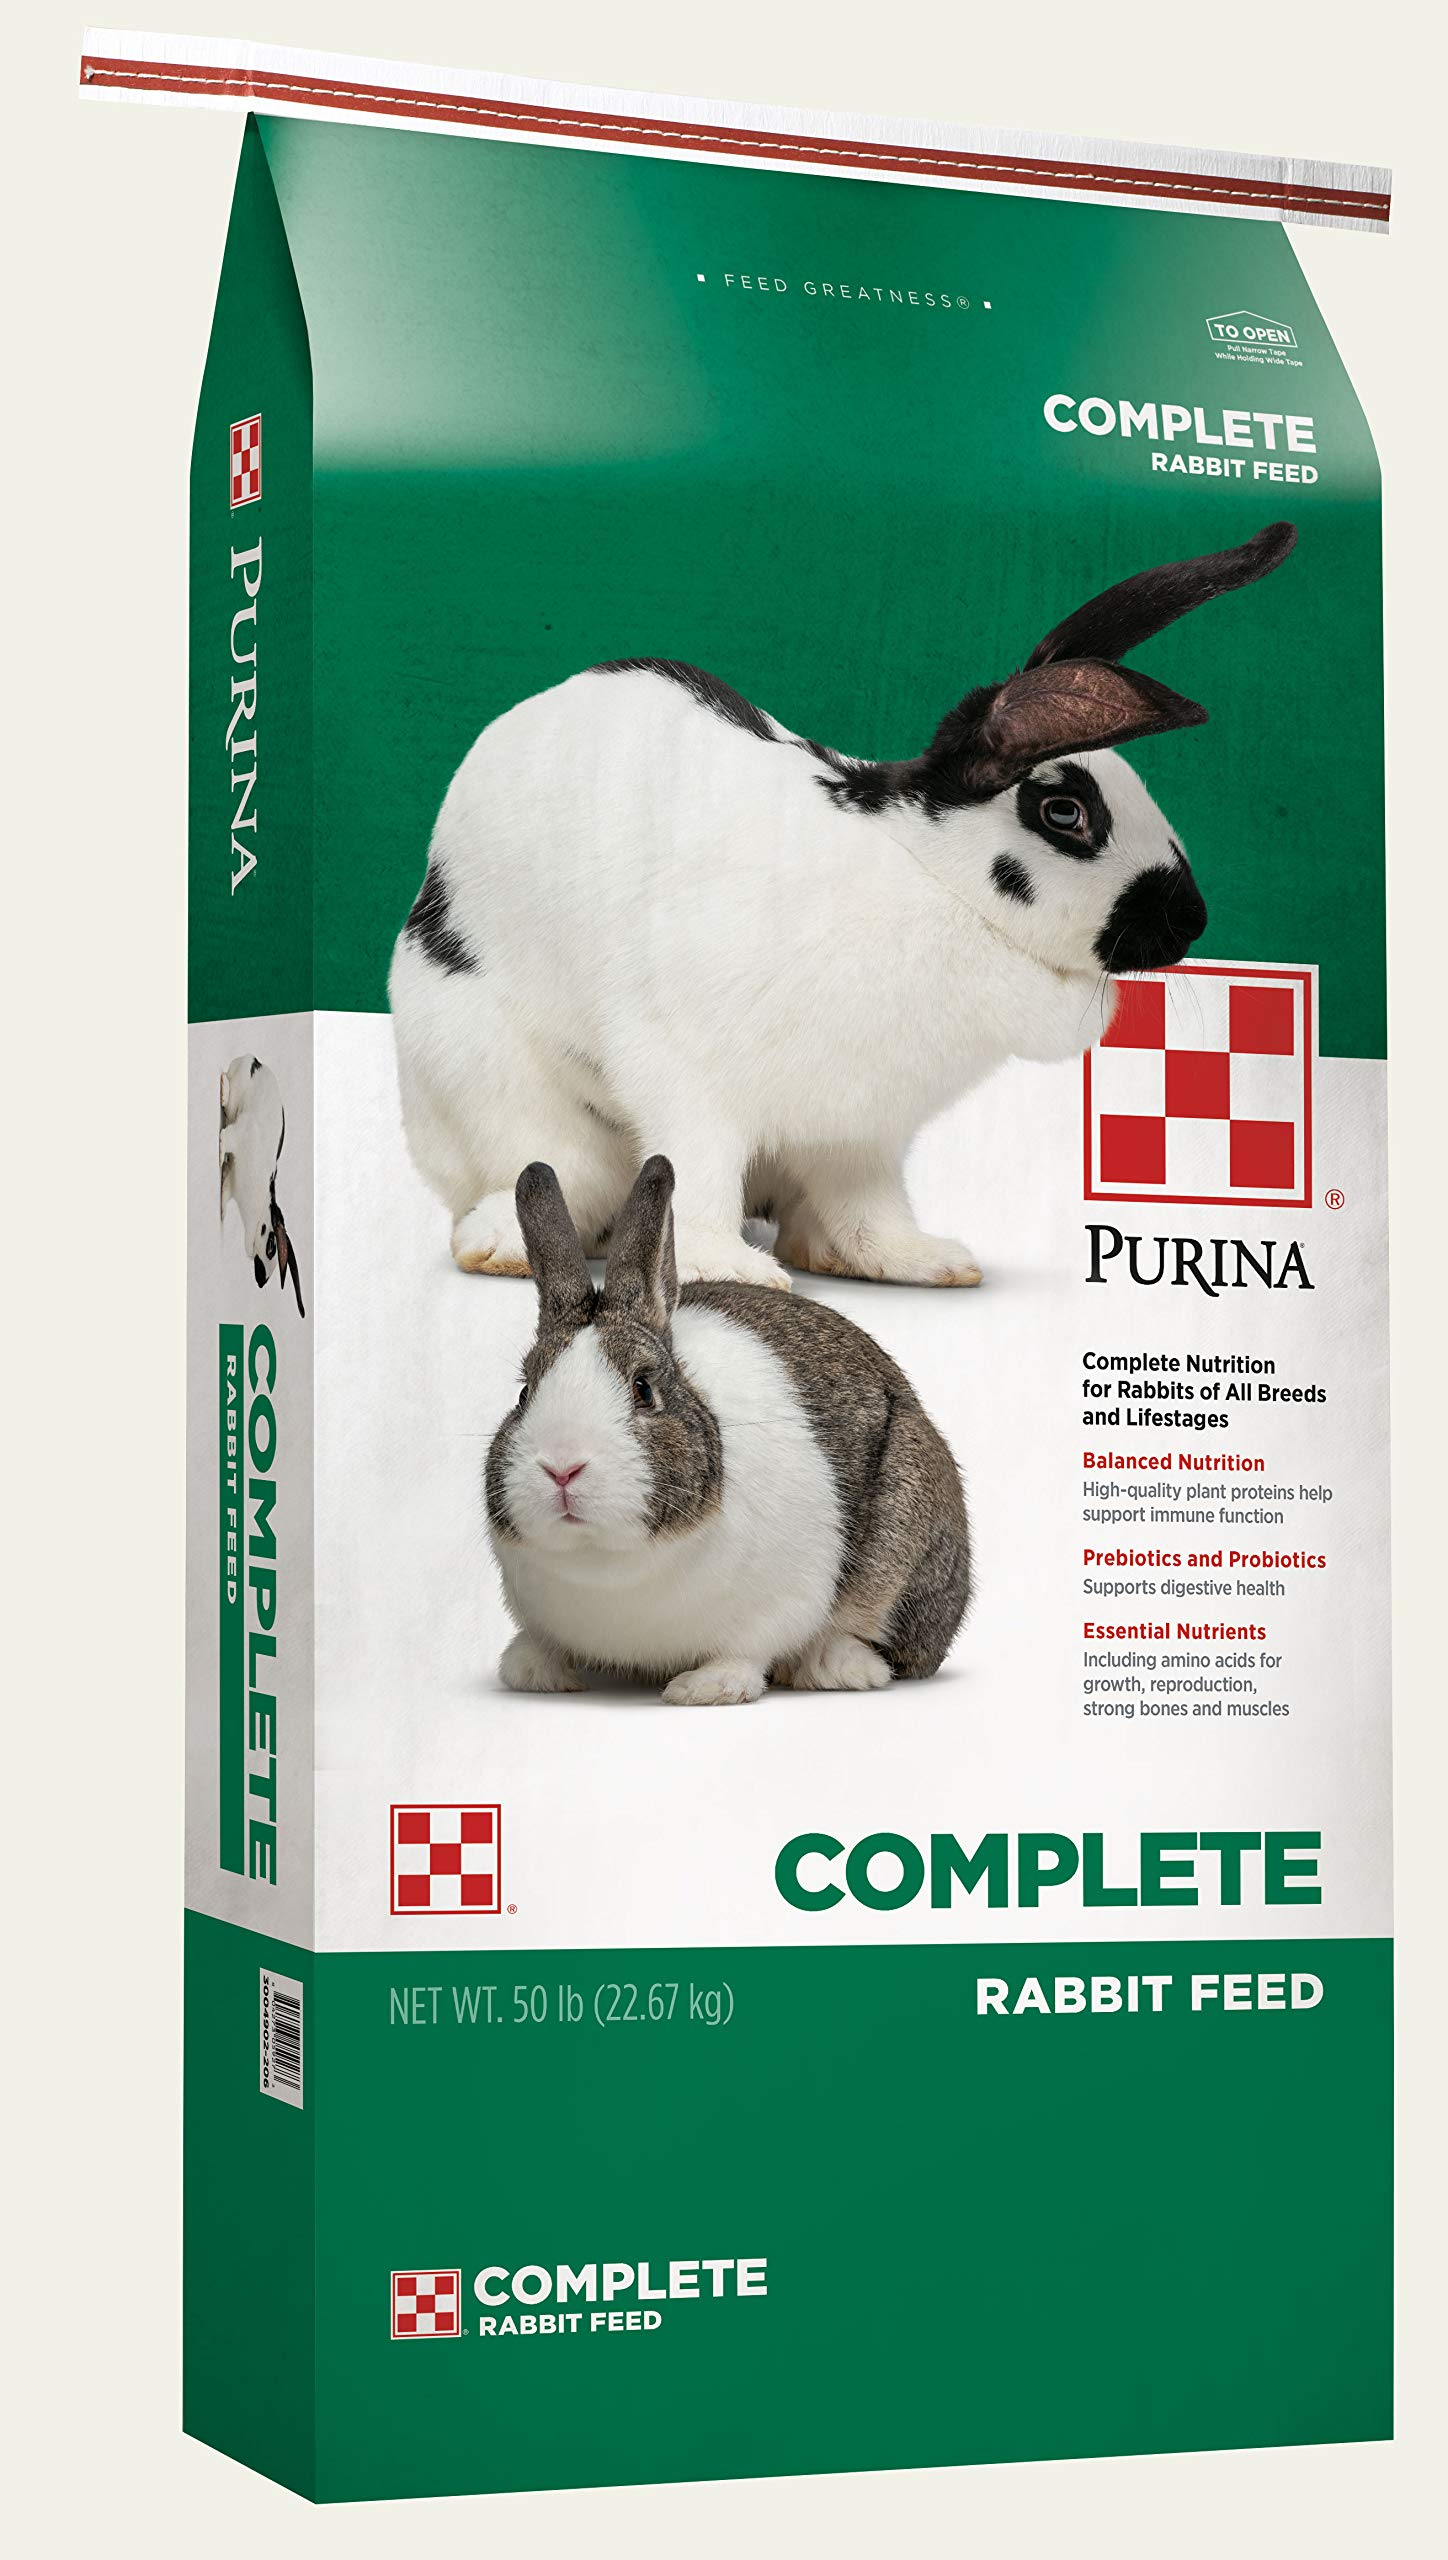 Purina Rabbit Food Complete Pellets, 25 lb by Purina